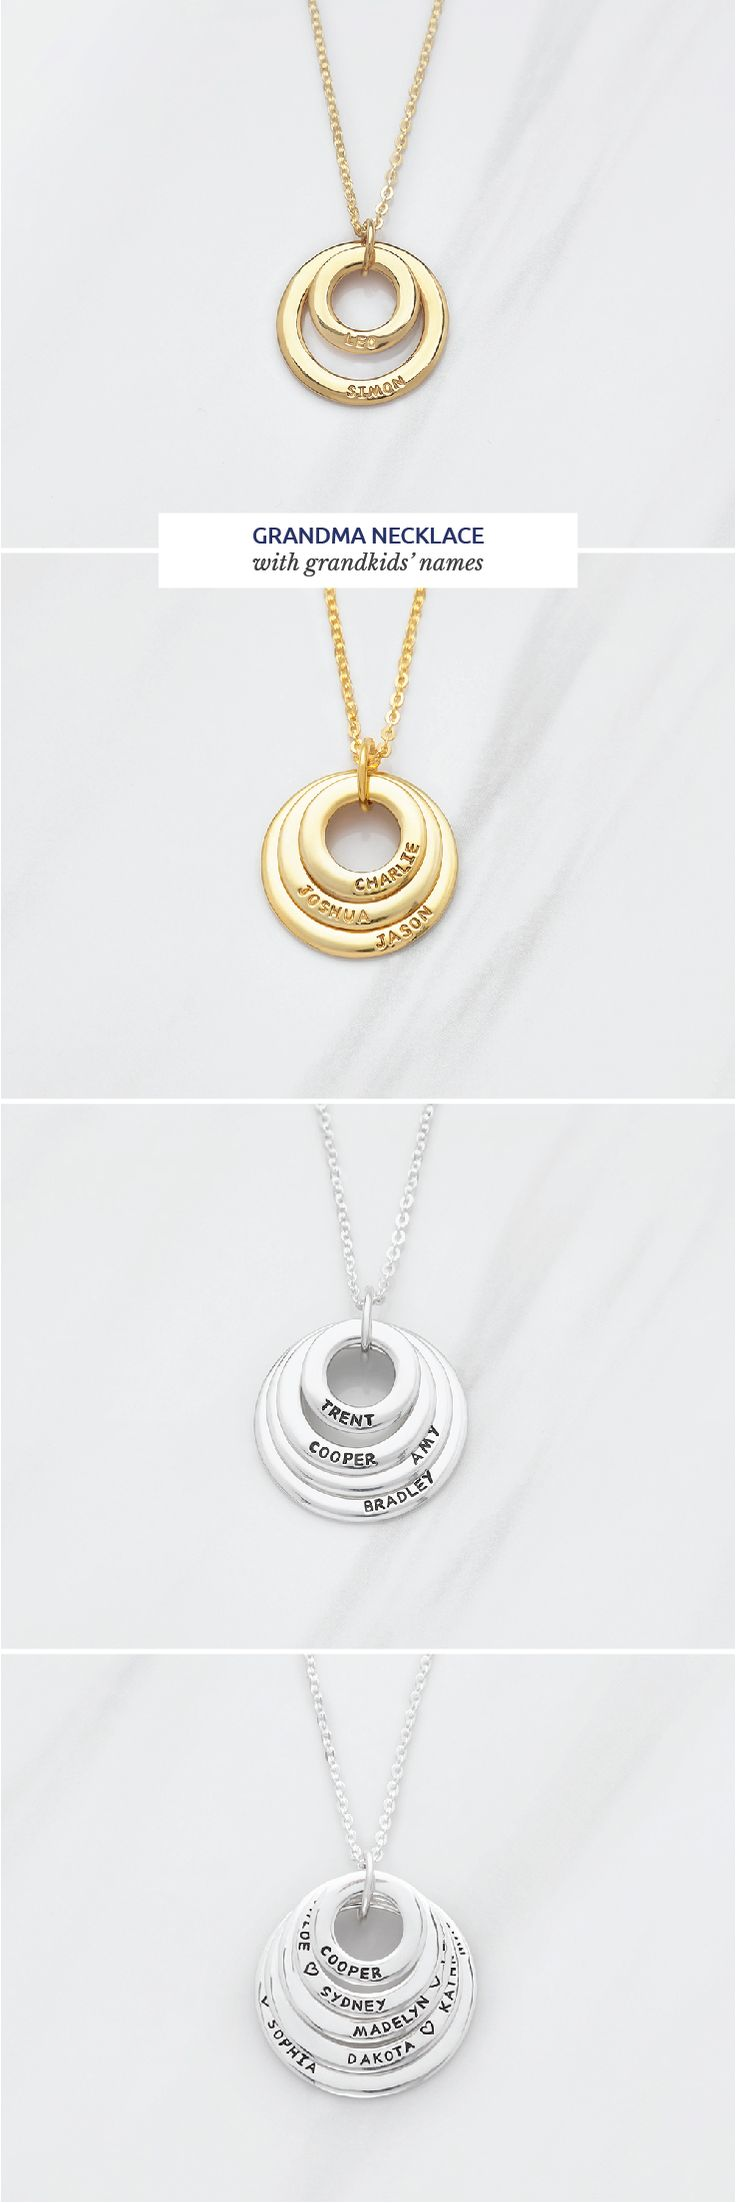 Grandma necklace with grandkids' names • Grandmother necklace • Personal...